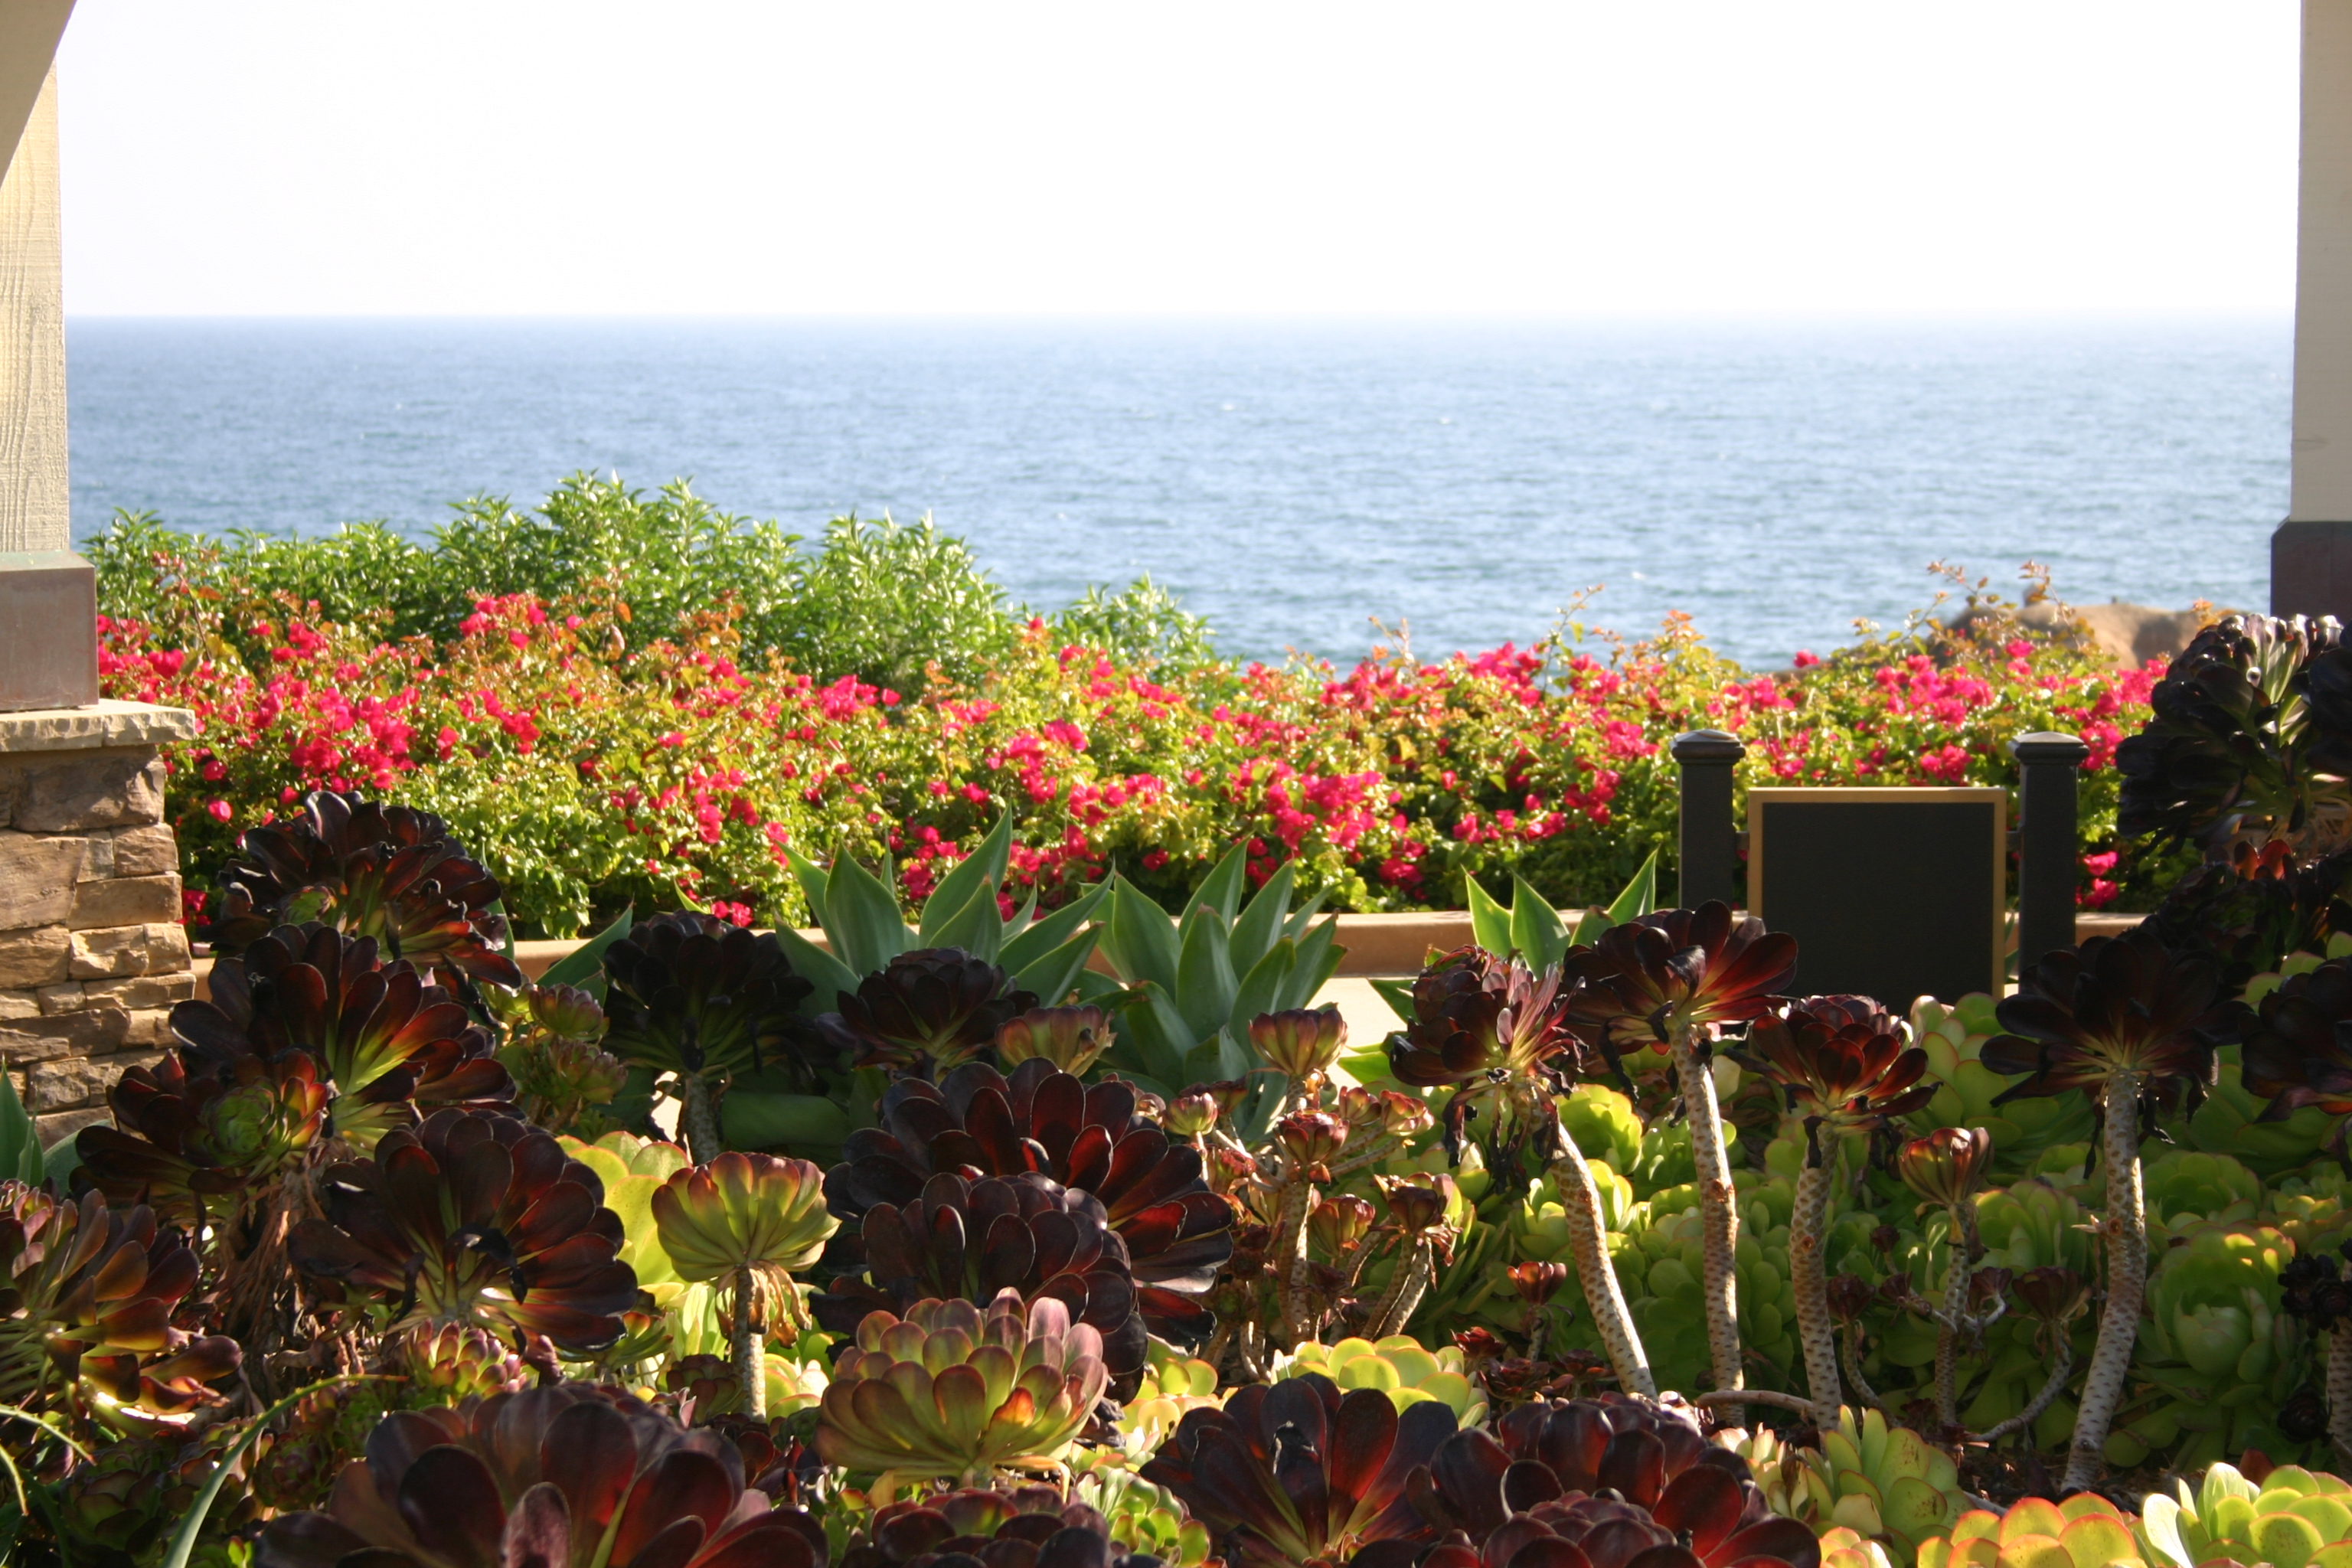 A garden of succulent plants overlook the ocean in Laguna.